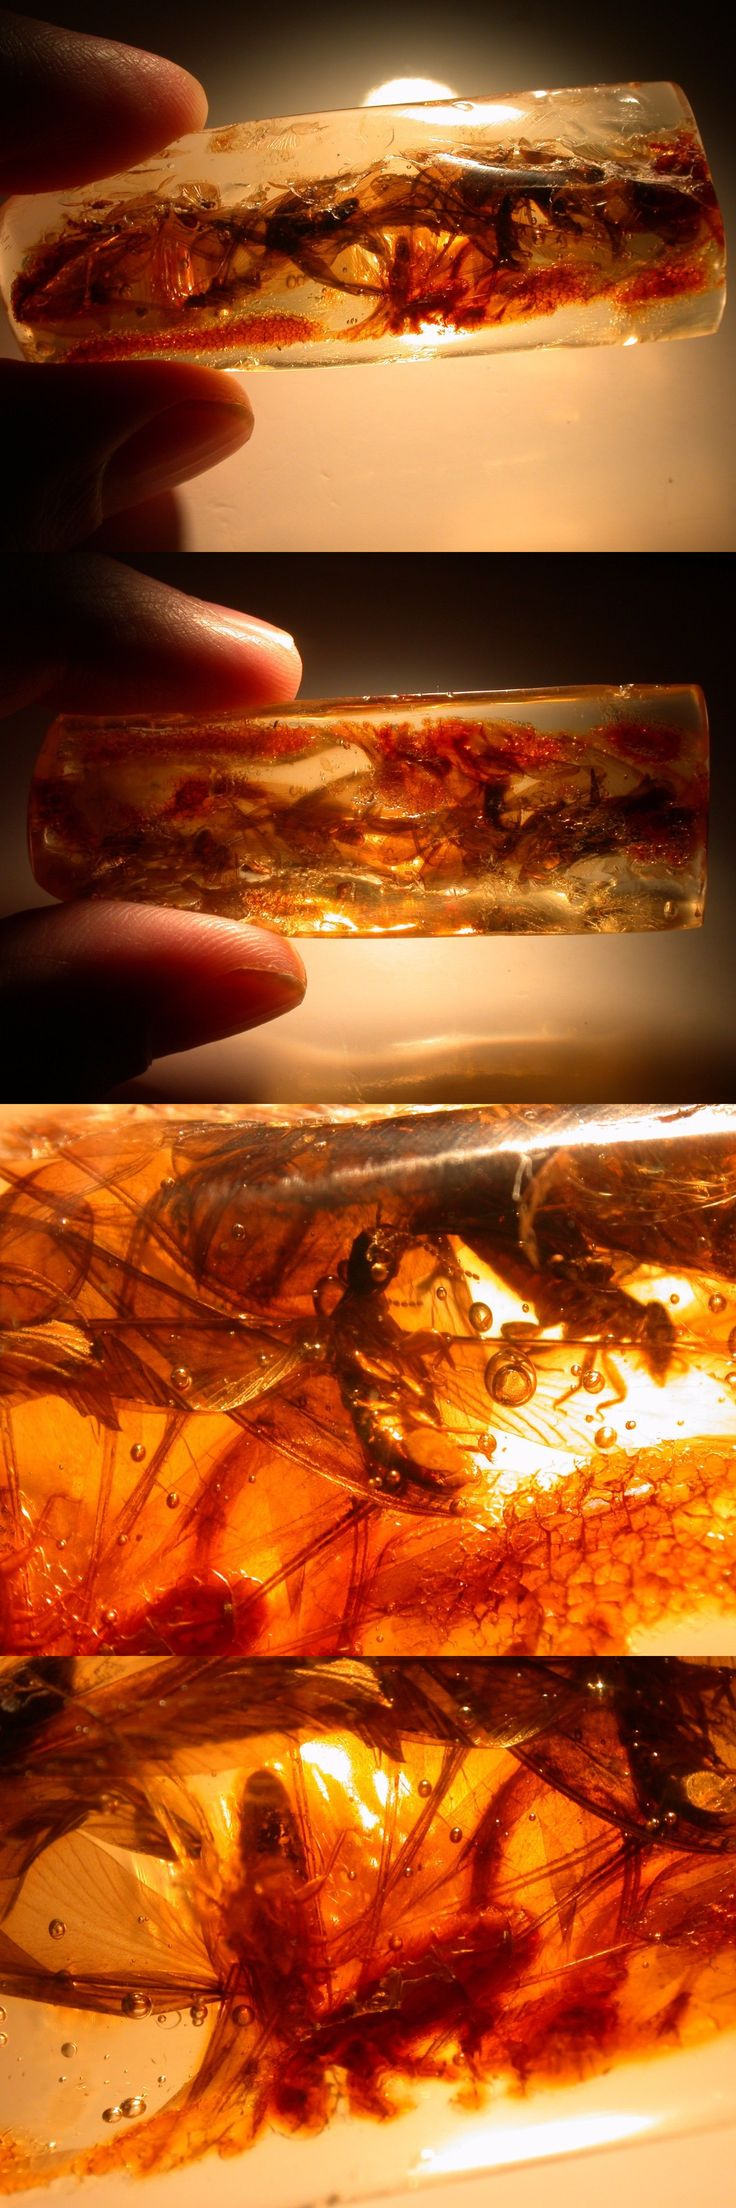 Amber 10191: Mating Swarm Of Winged Termites With 2 Winged Ants In Colombian Copal Amber -> BUY IT NOW ONLY: $45 on eBay!